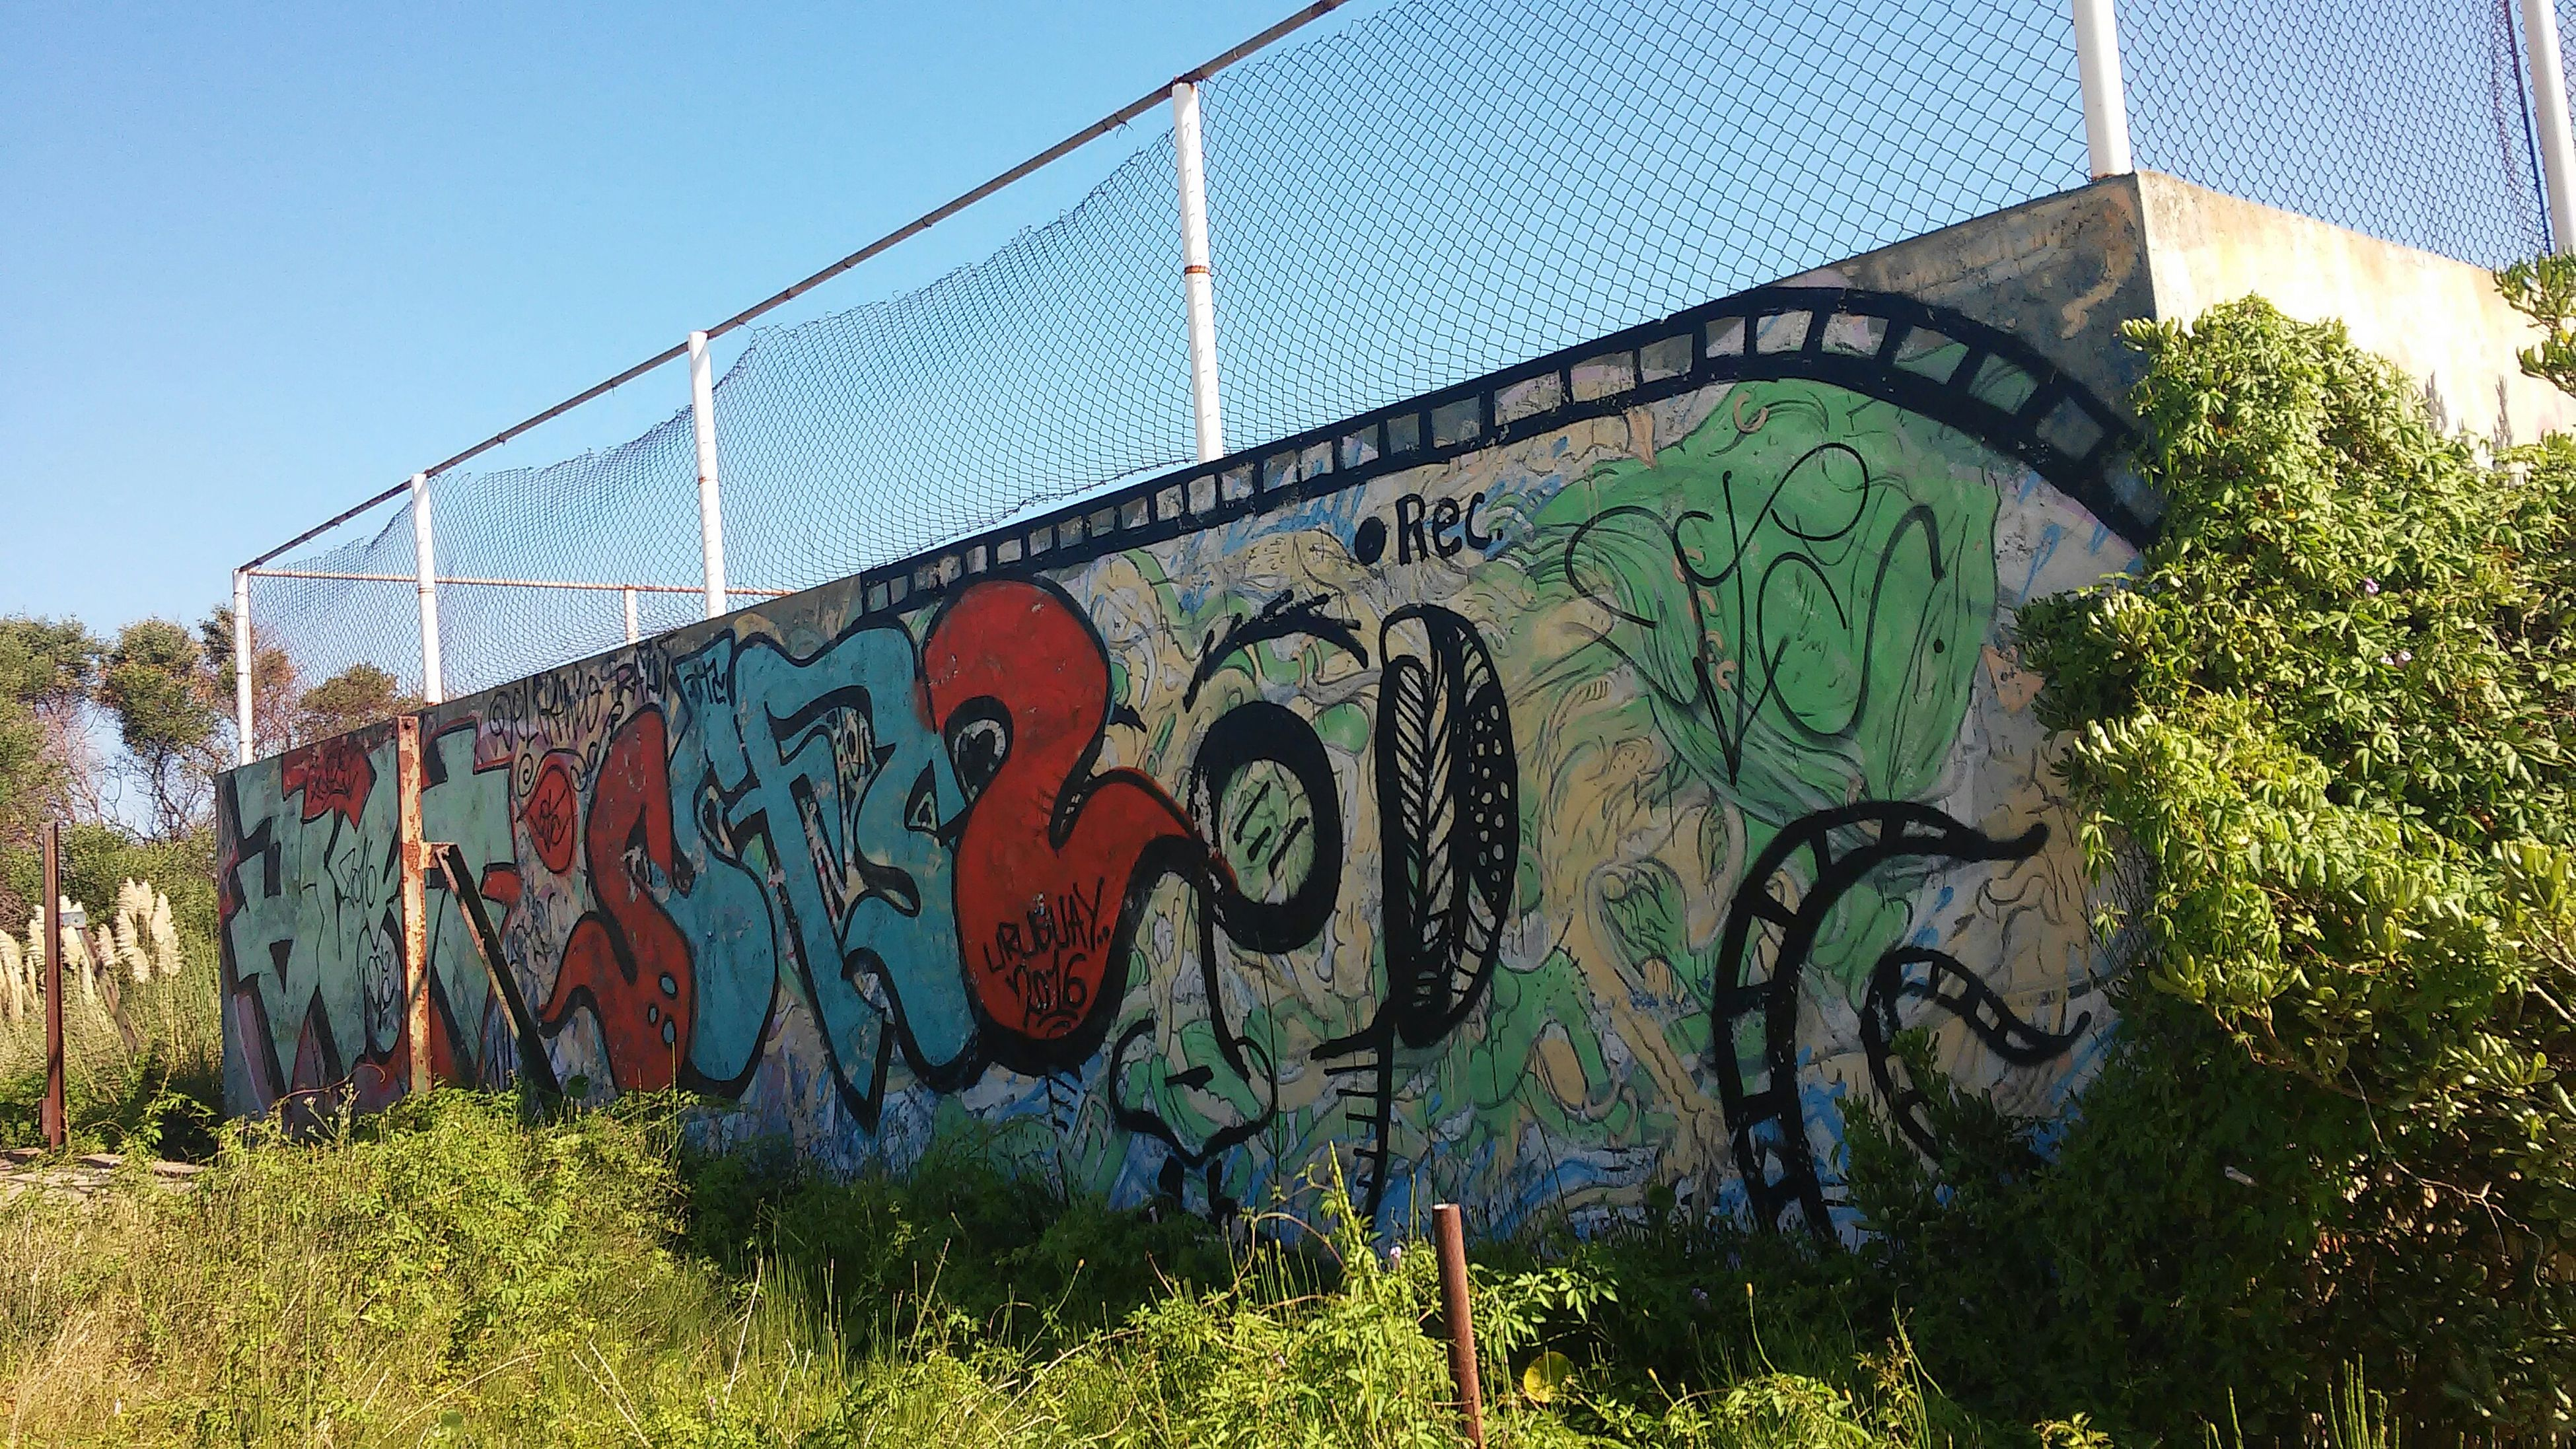 graffiti, communication, text, no people, spray paint, outdoors, close-up, day